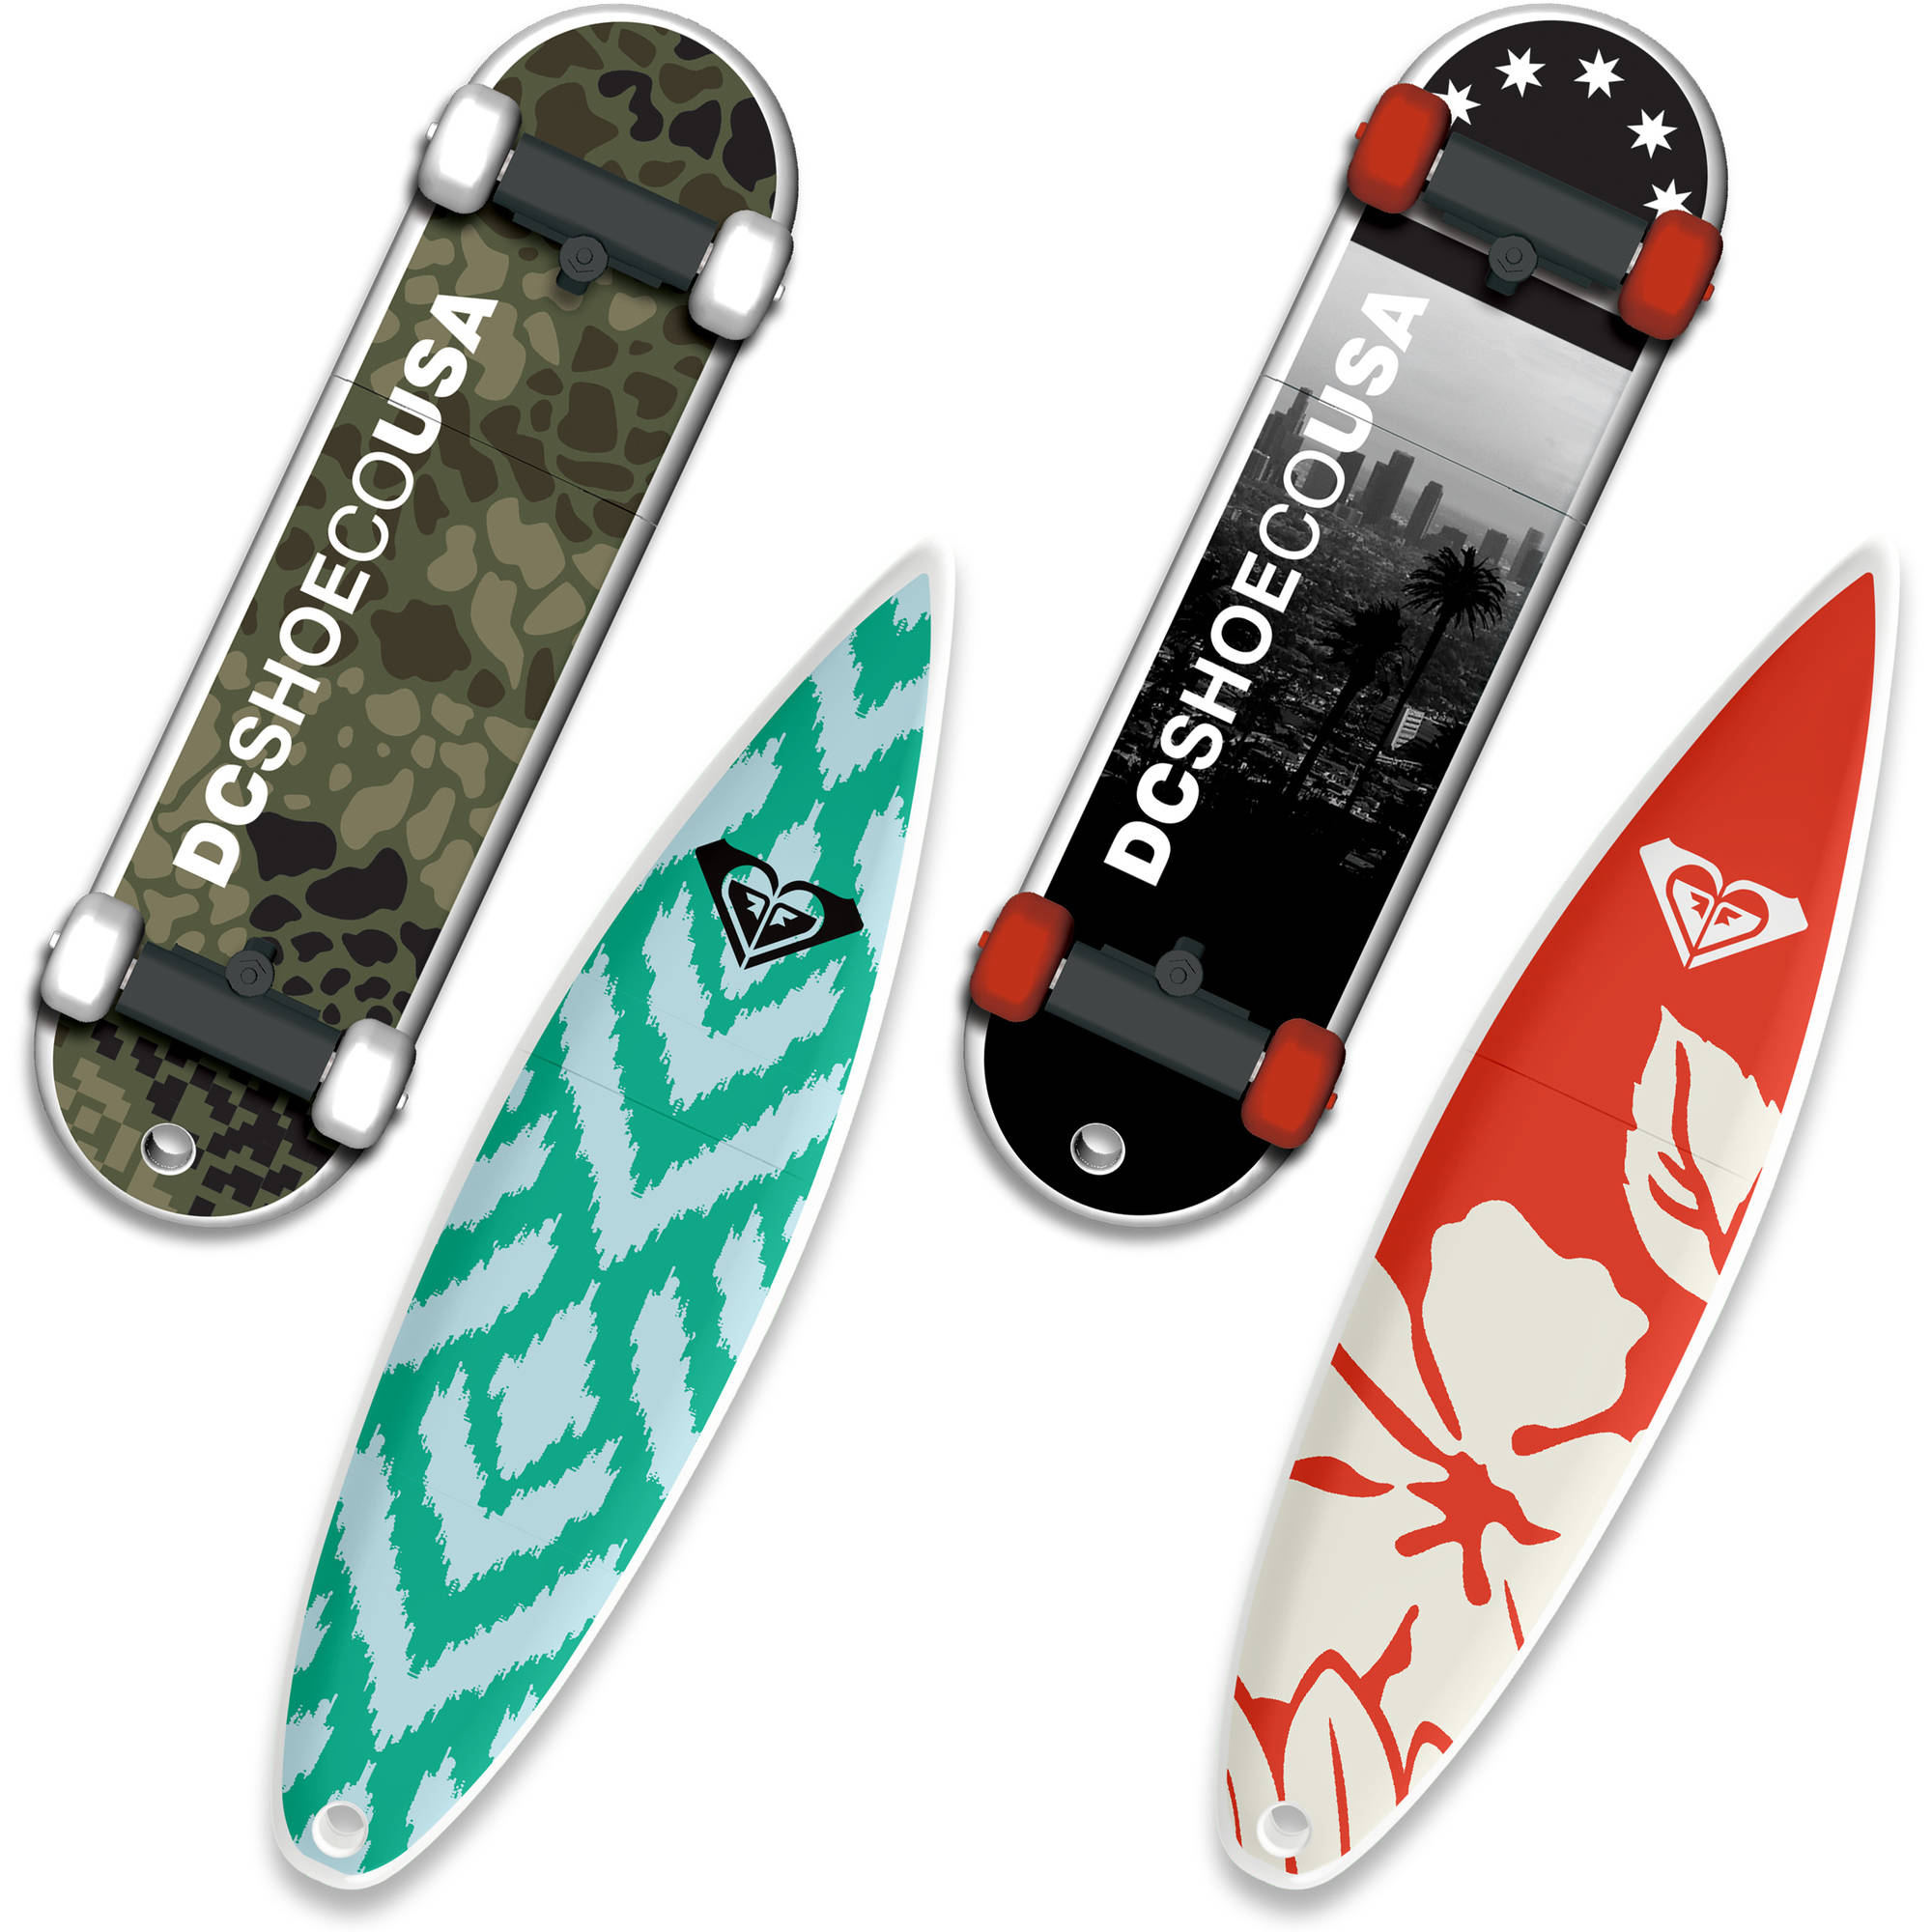 16GB EP ASD USB, DC Shoes SkateDrive and Roxy SurfDrive, 4-Pack